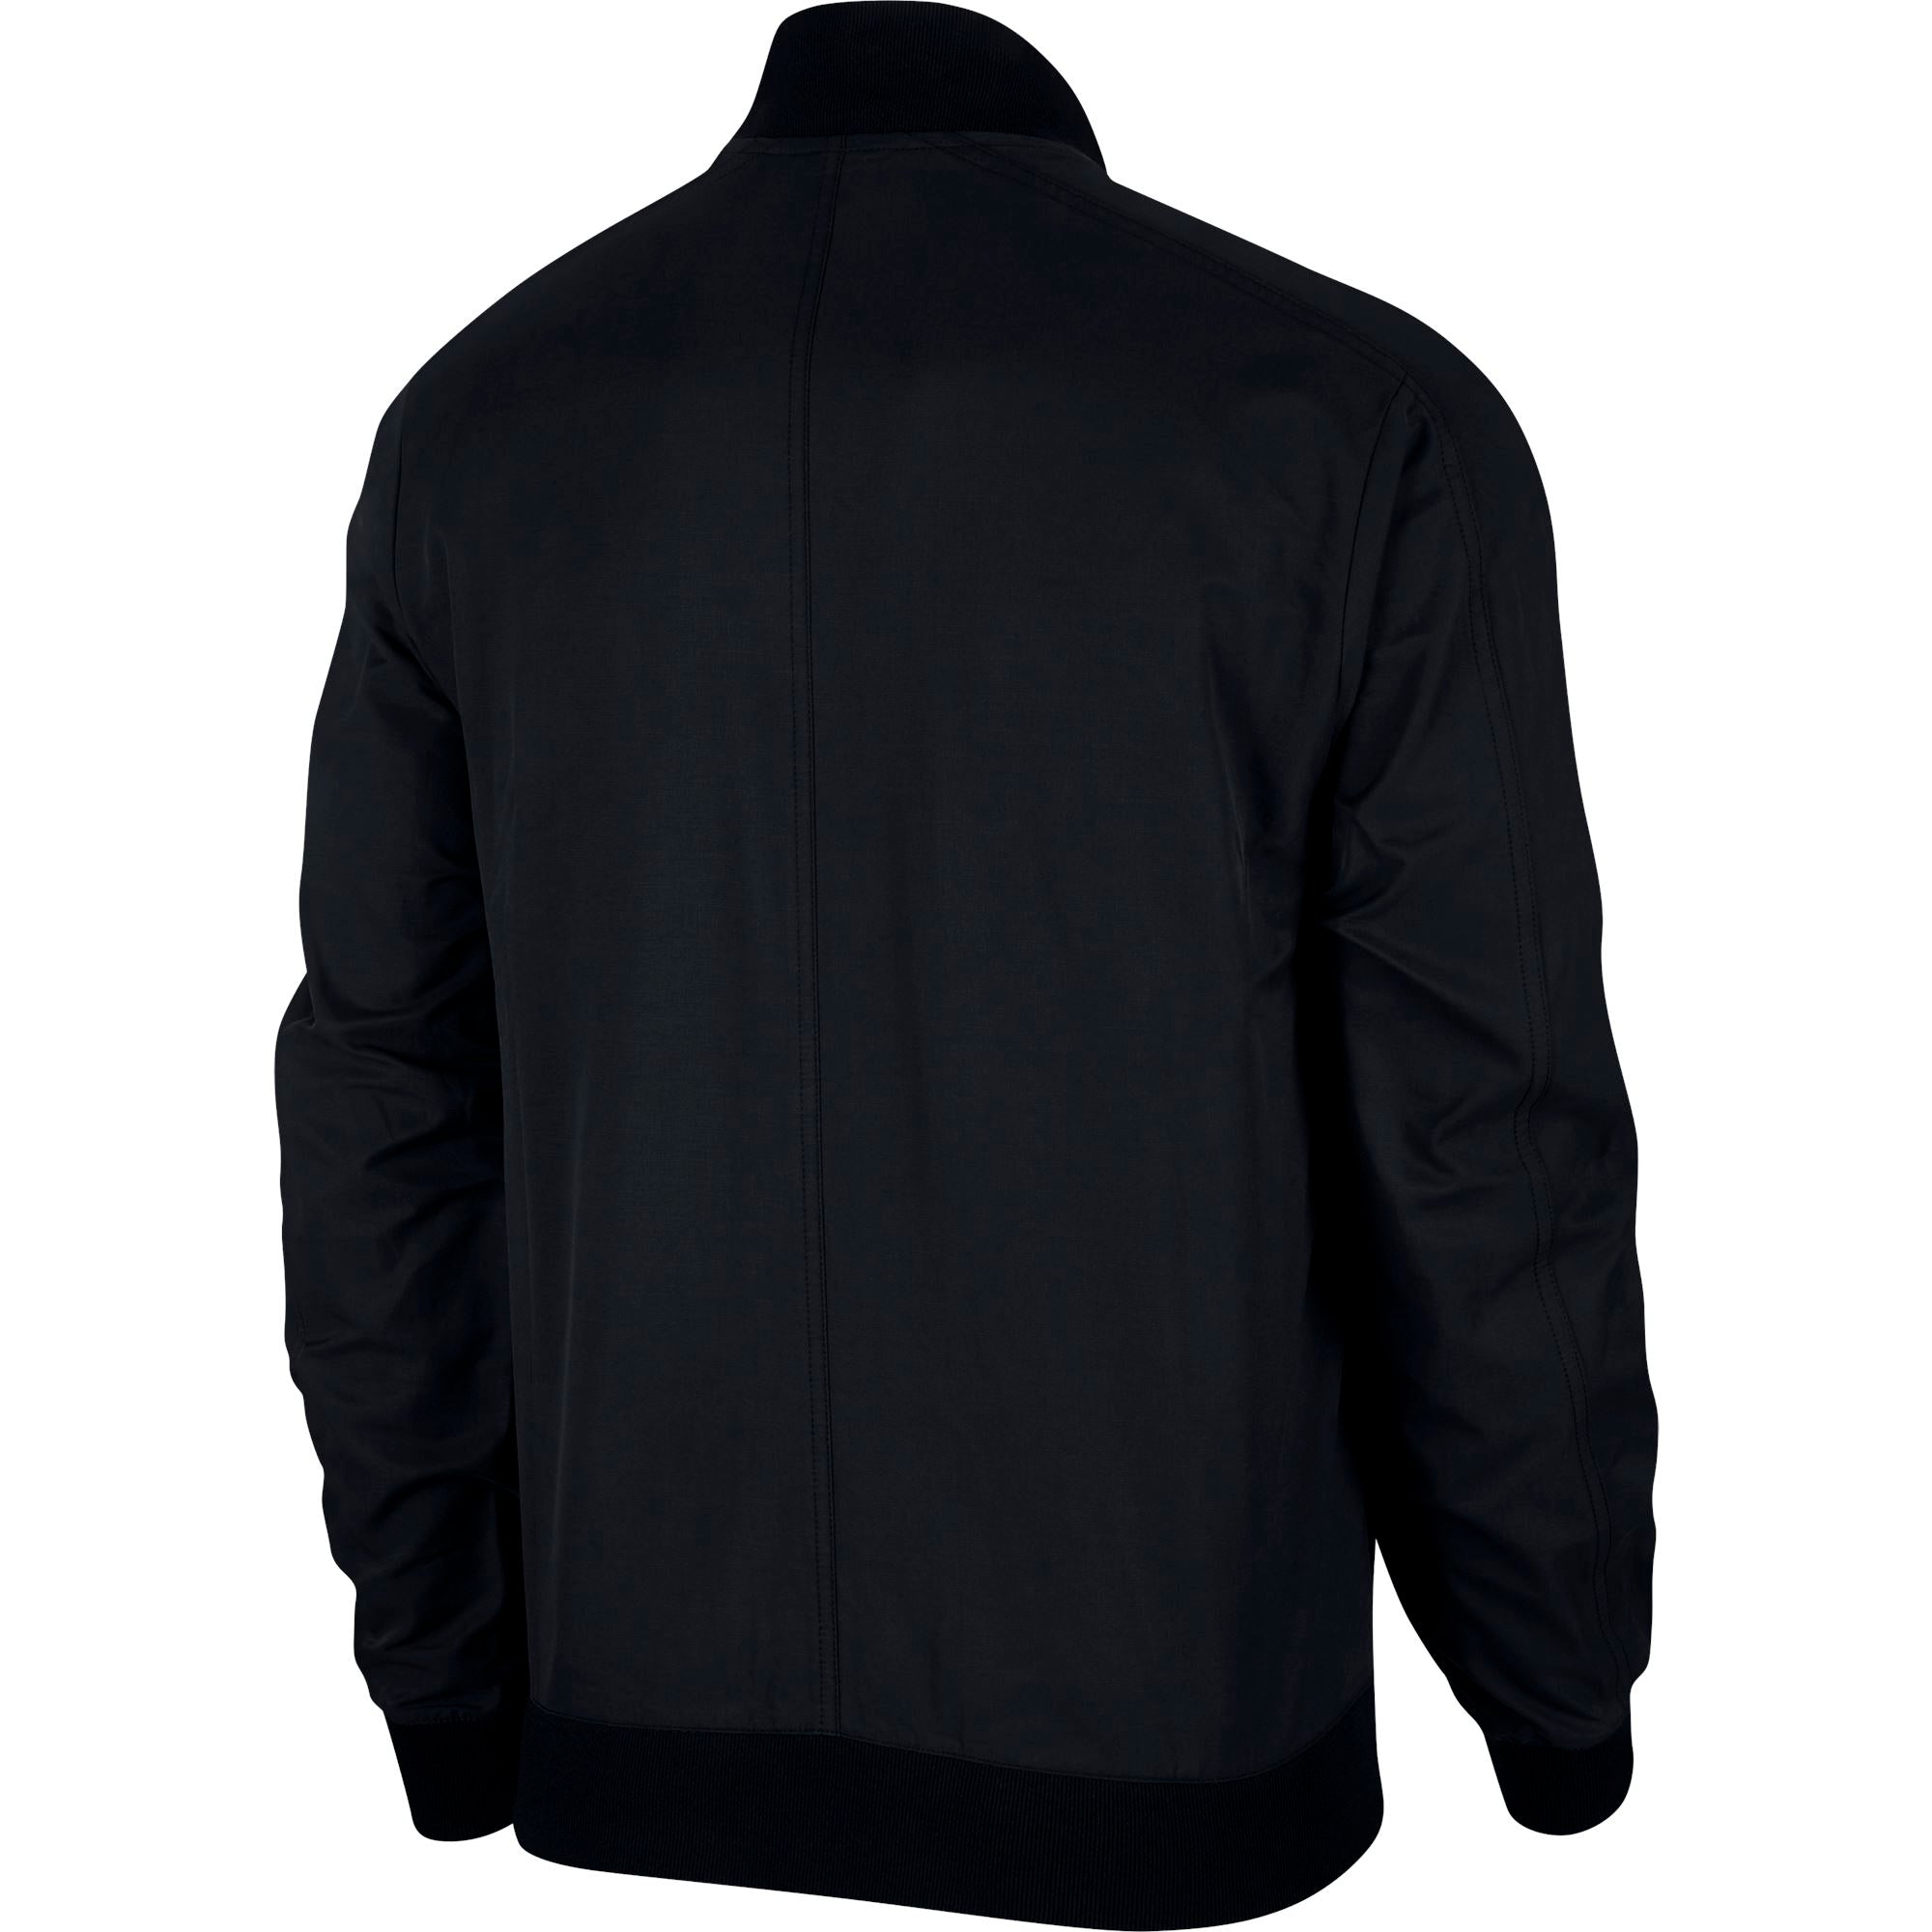 Nike Men's Sportswear Woven Players Jacket - Black/White SP-ApparelJackets-Mens Nike